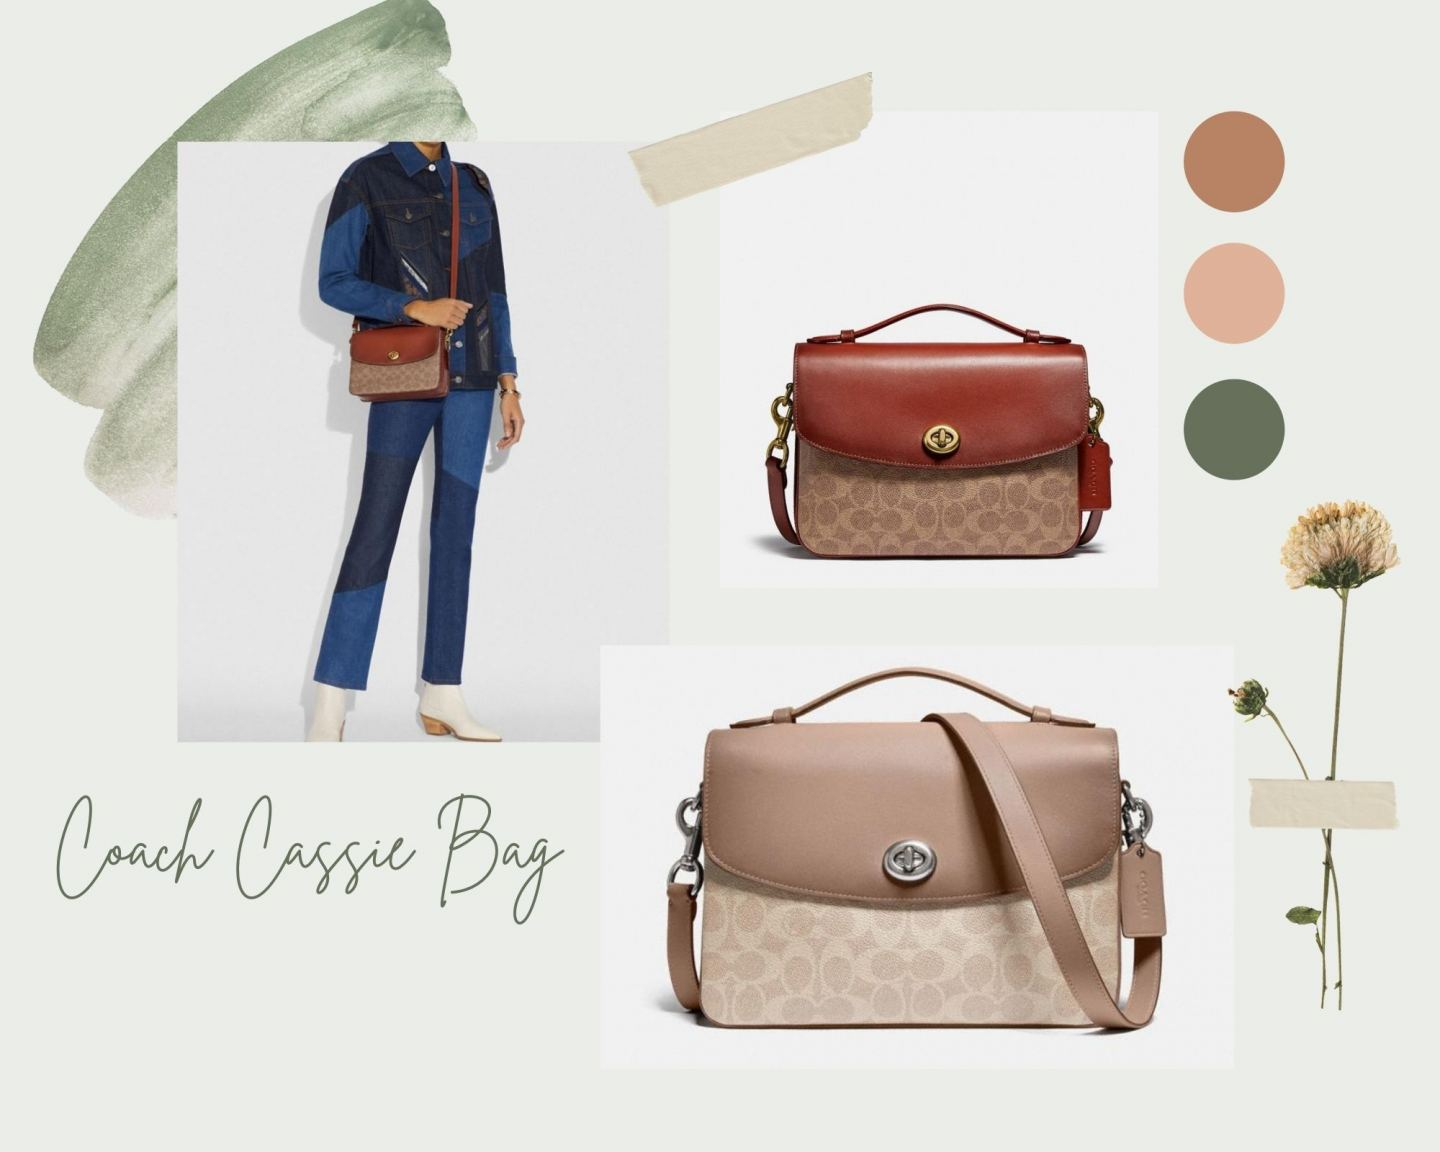 Why I NEED To Buy The Coach Cassie Bag